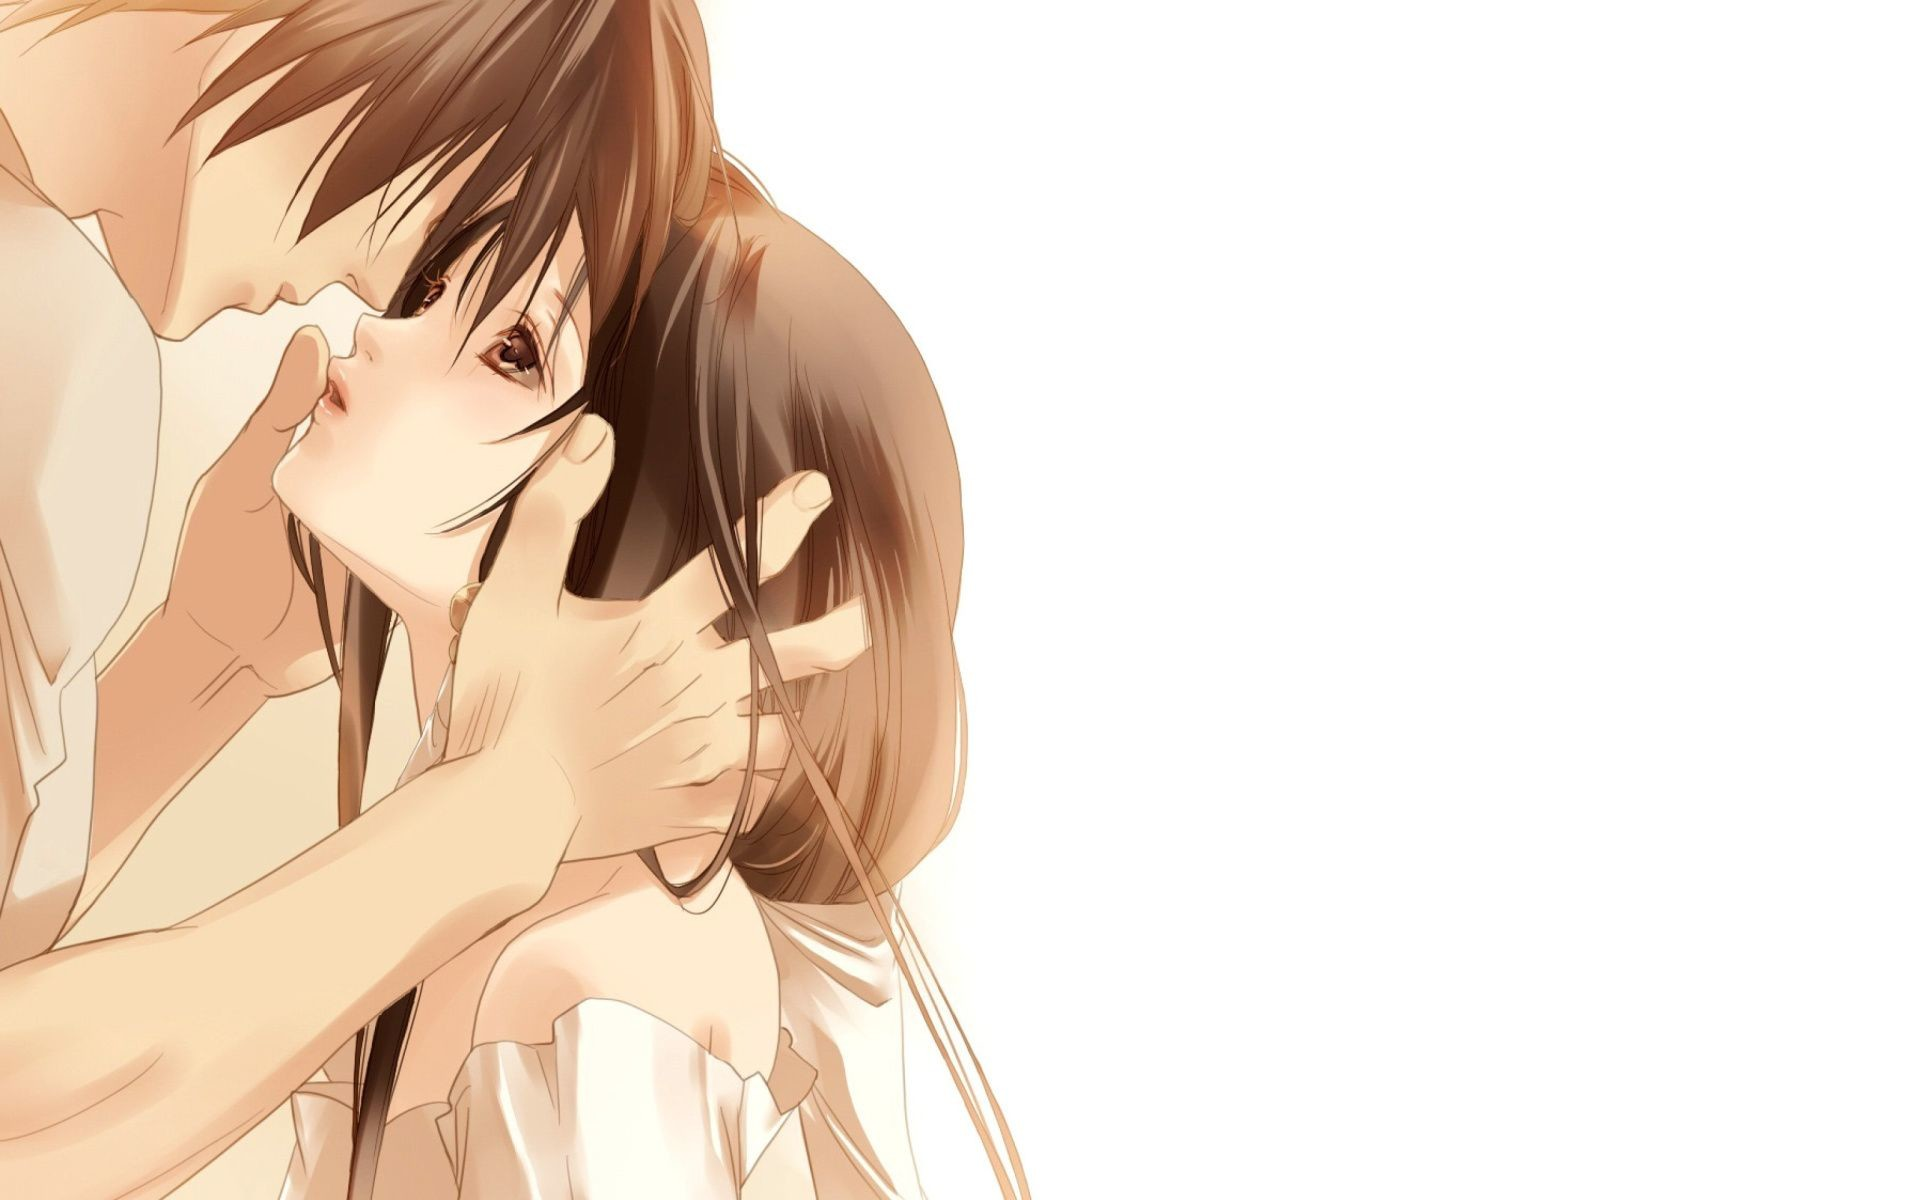 Res: 1920x1200, Anime Couple Photos in High Definition – , by Shemeka Wilham for  deskand mobile